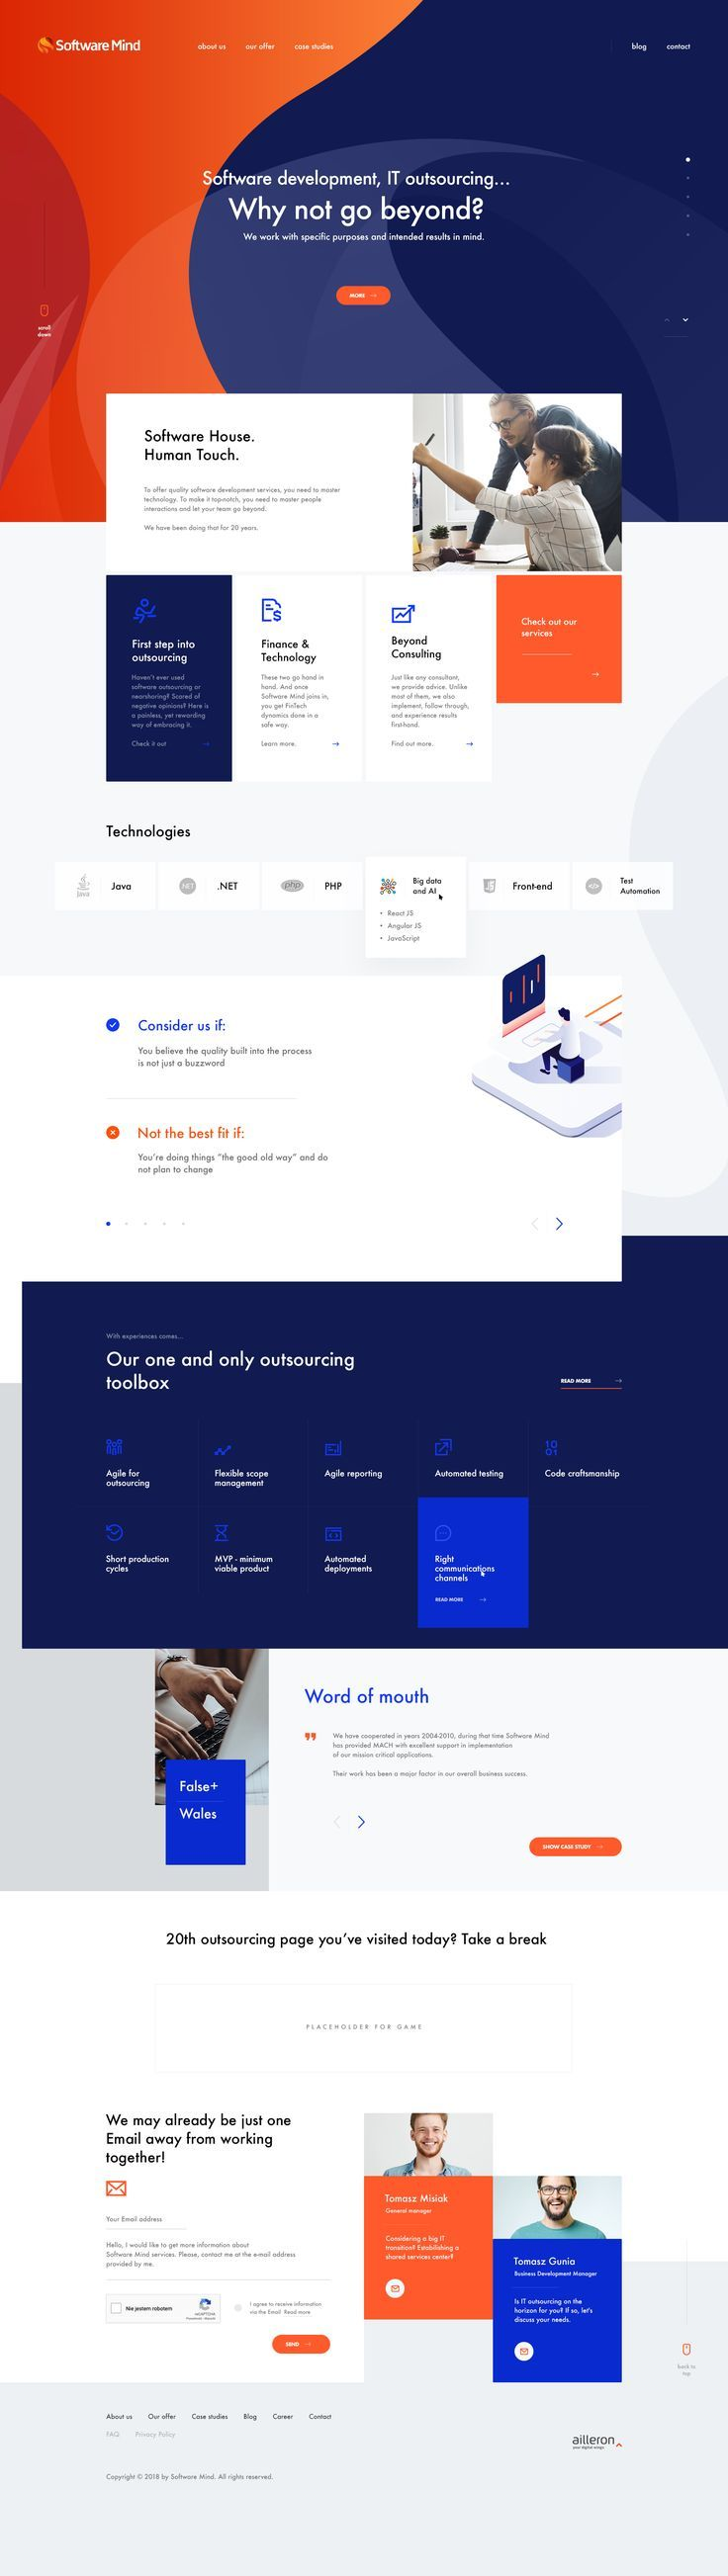 Best Homepages 2019 How To Design A Website – The 4 Stages Process | Website Designs